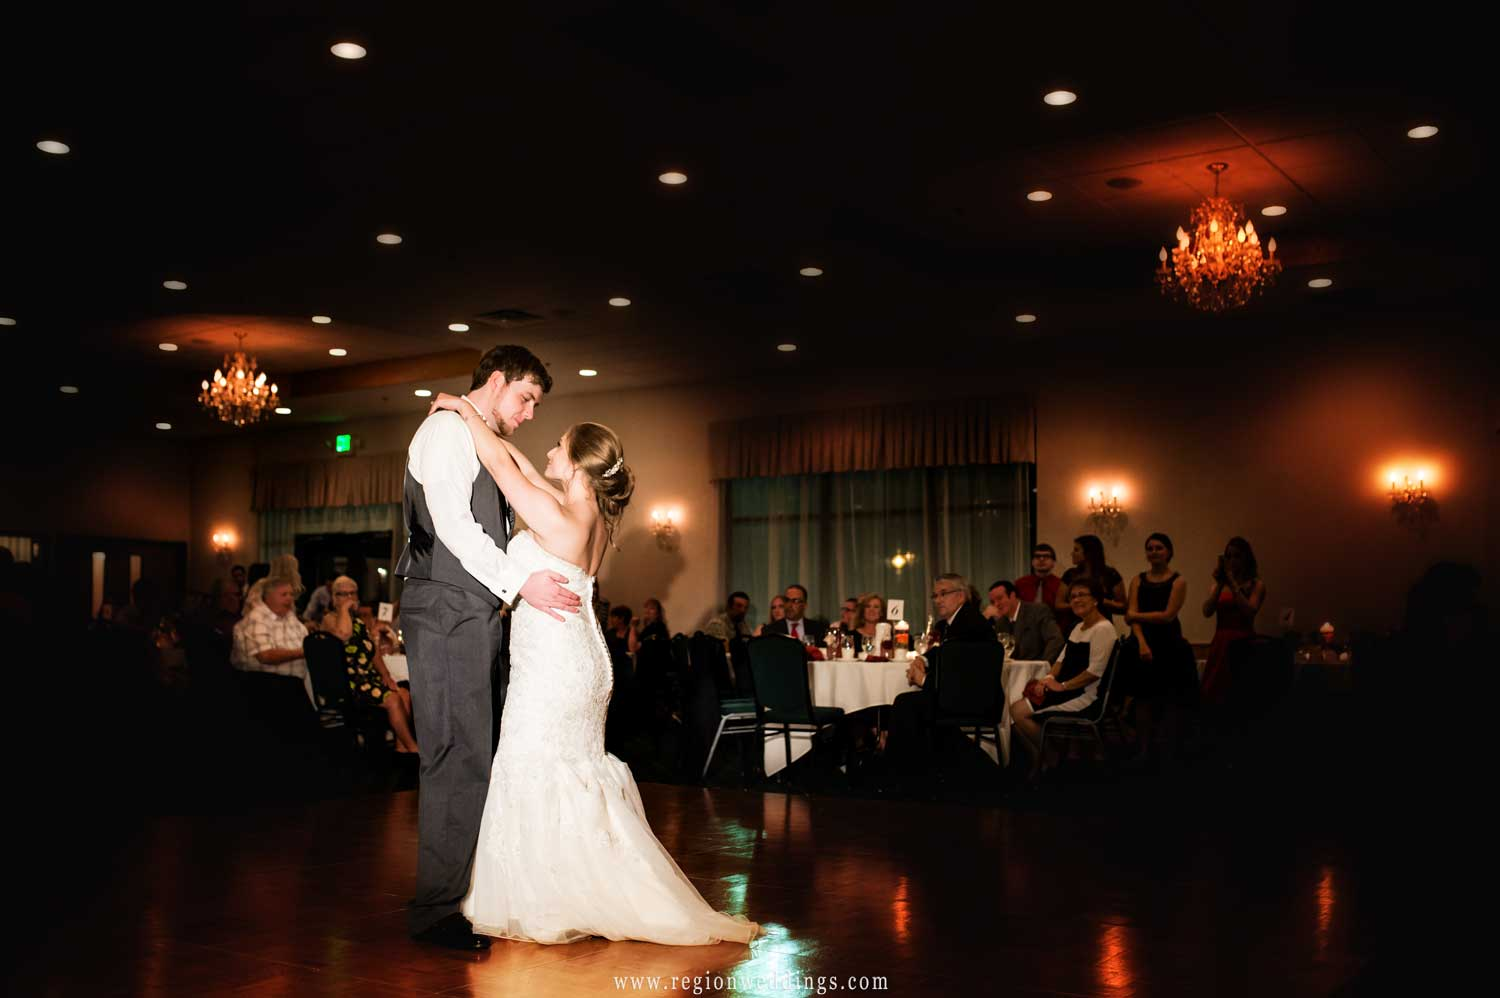 First dance at The Patrician Banquet Center.